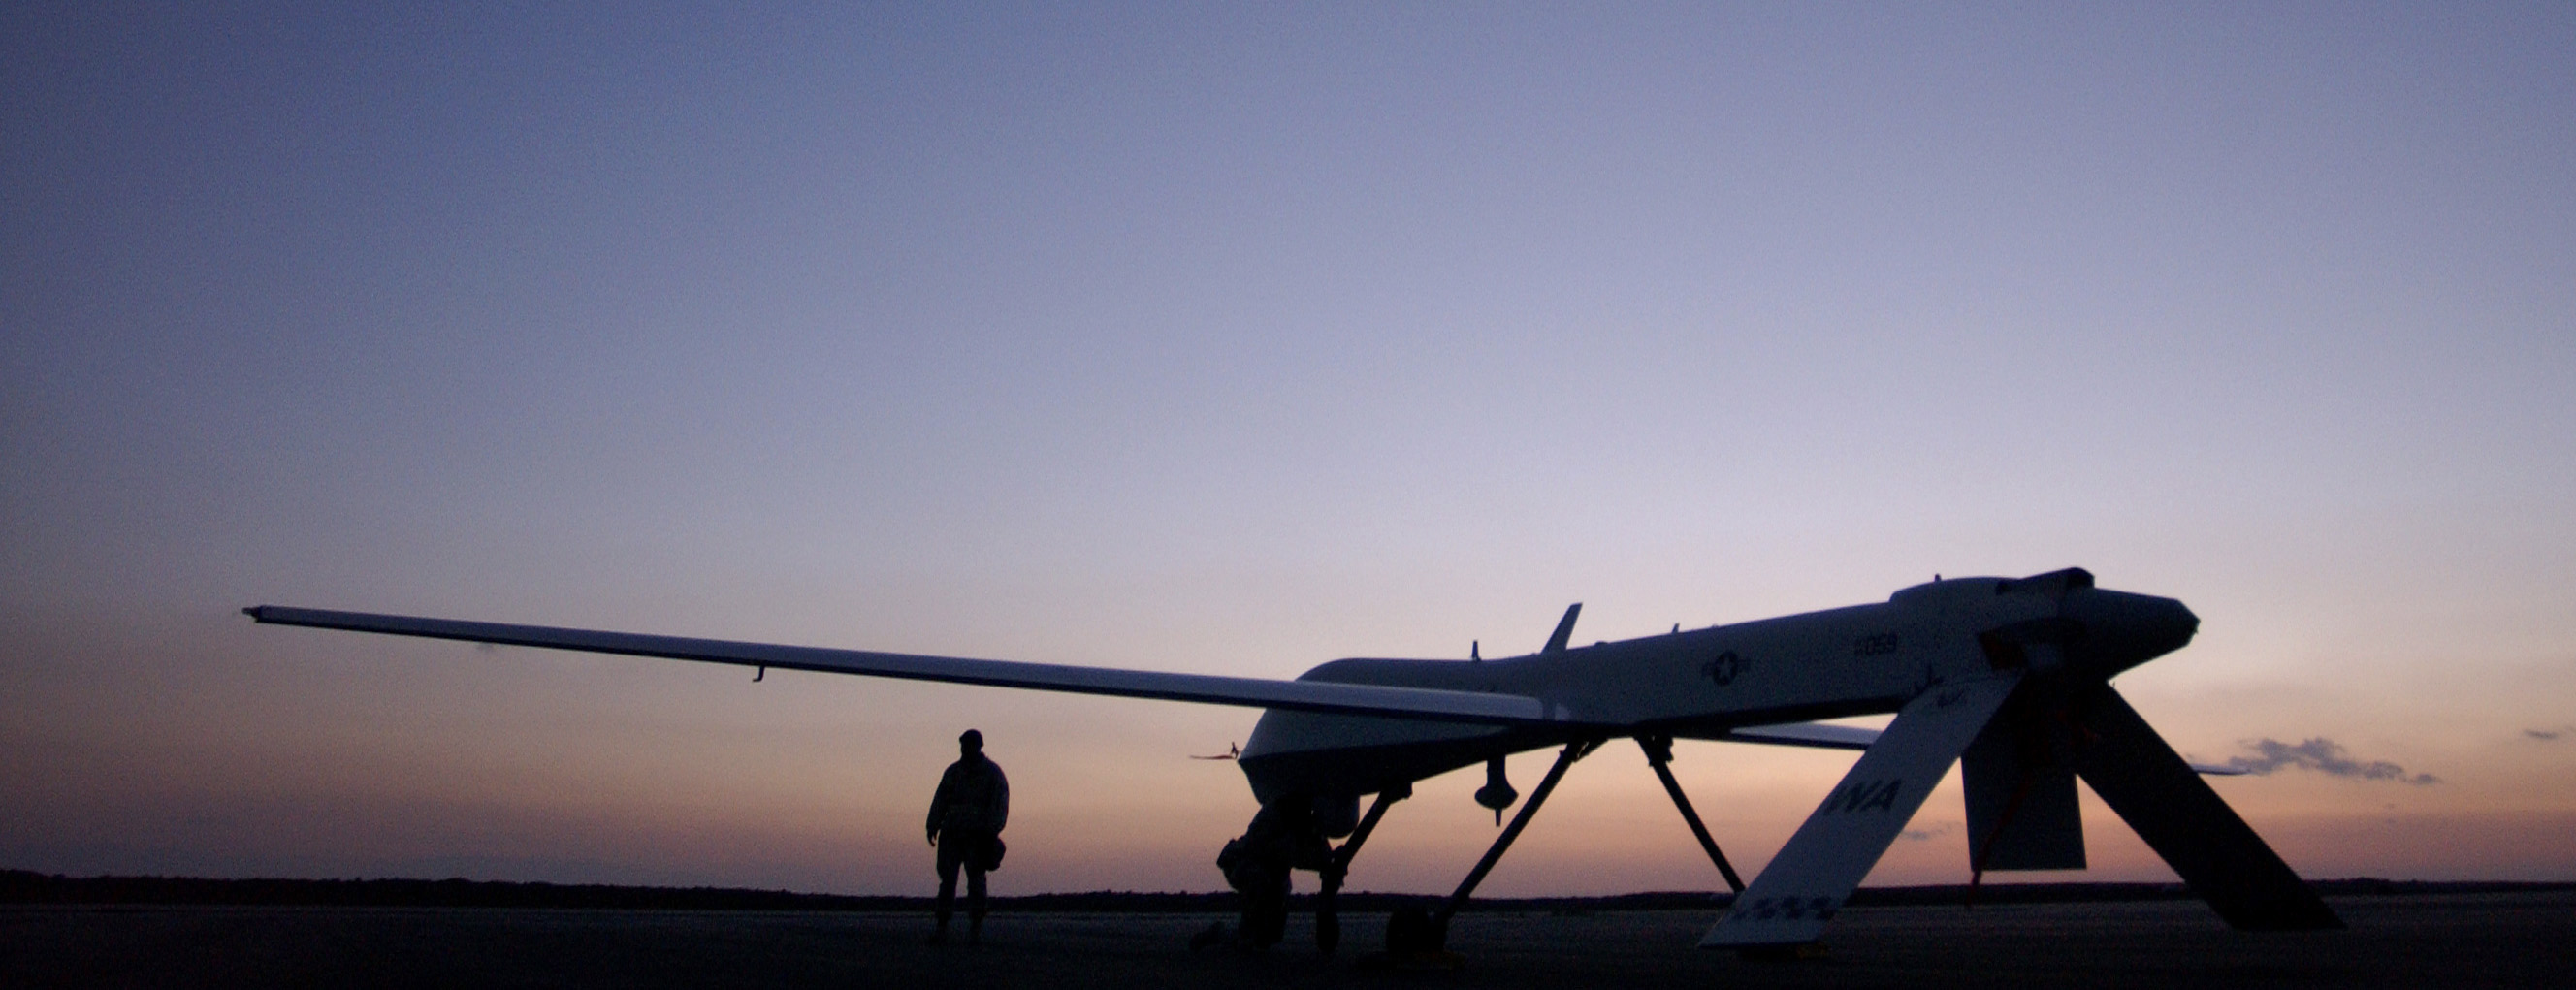 MQ-1 Predator - MQ-1 Predator against the sunset (sunrise?) with a man standing next to it.